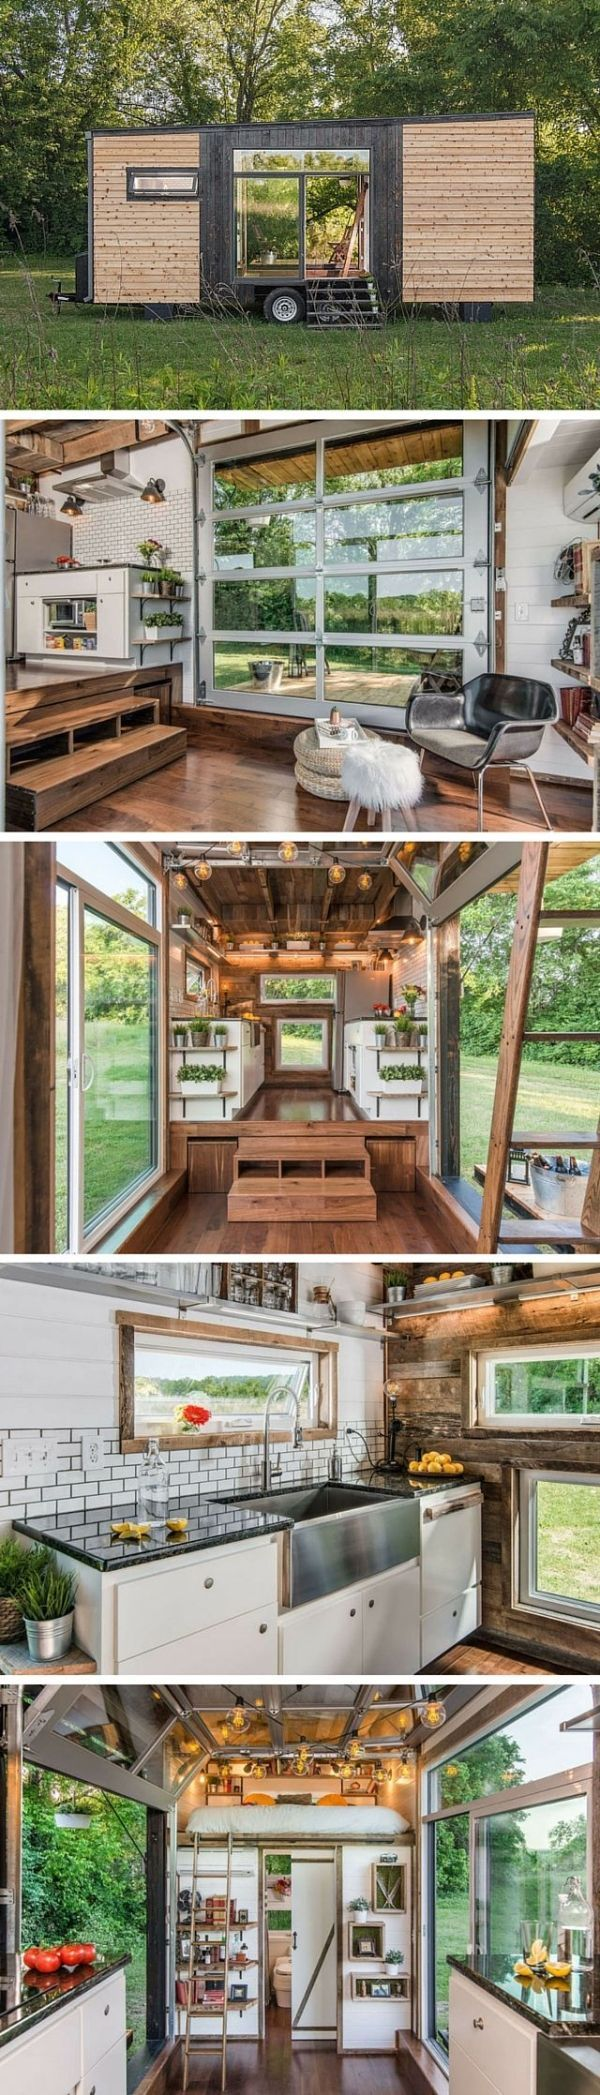 The Alpha tiny house by New Frontier Tiny Homes. by robyn